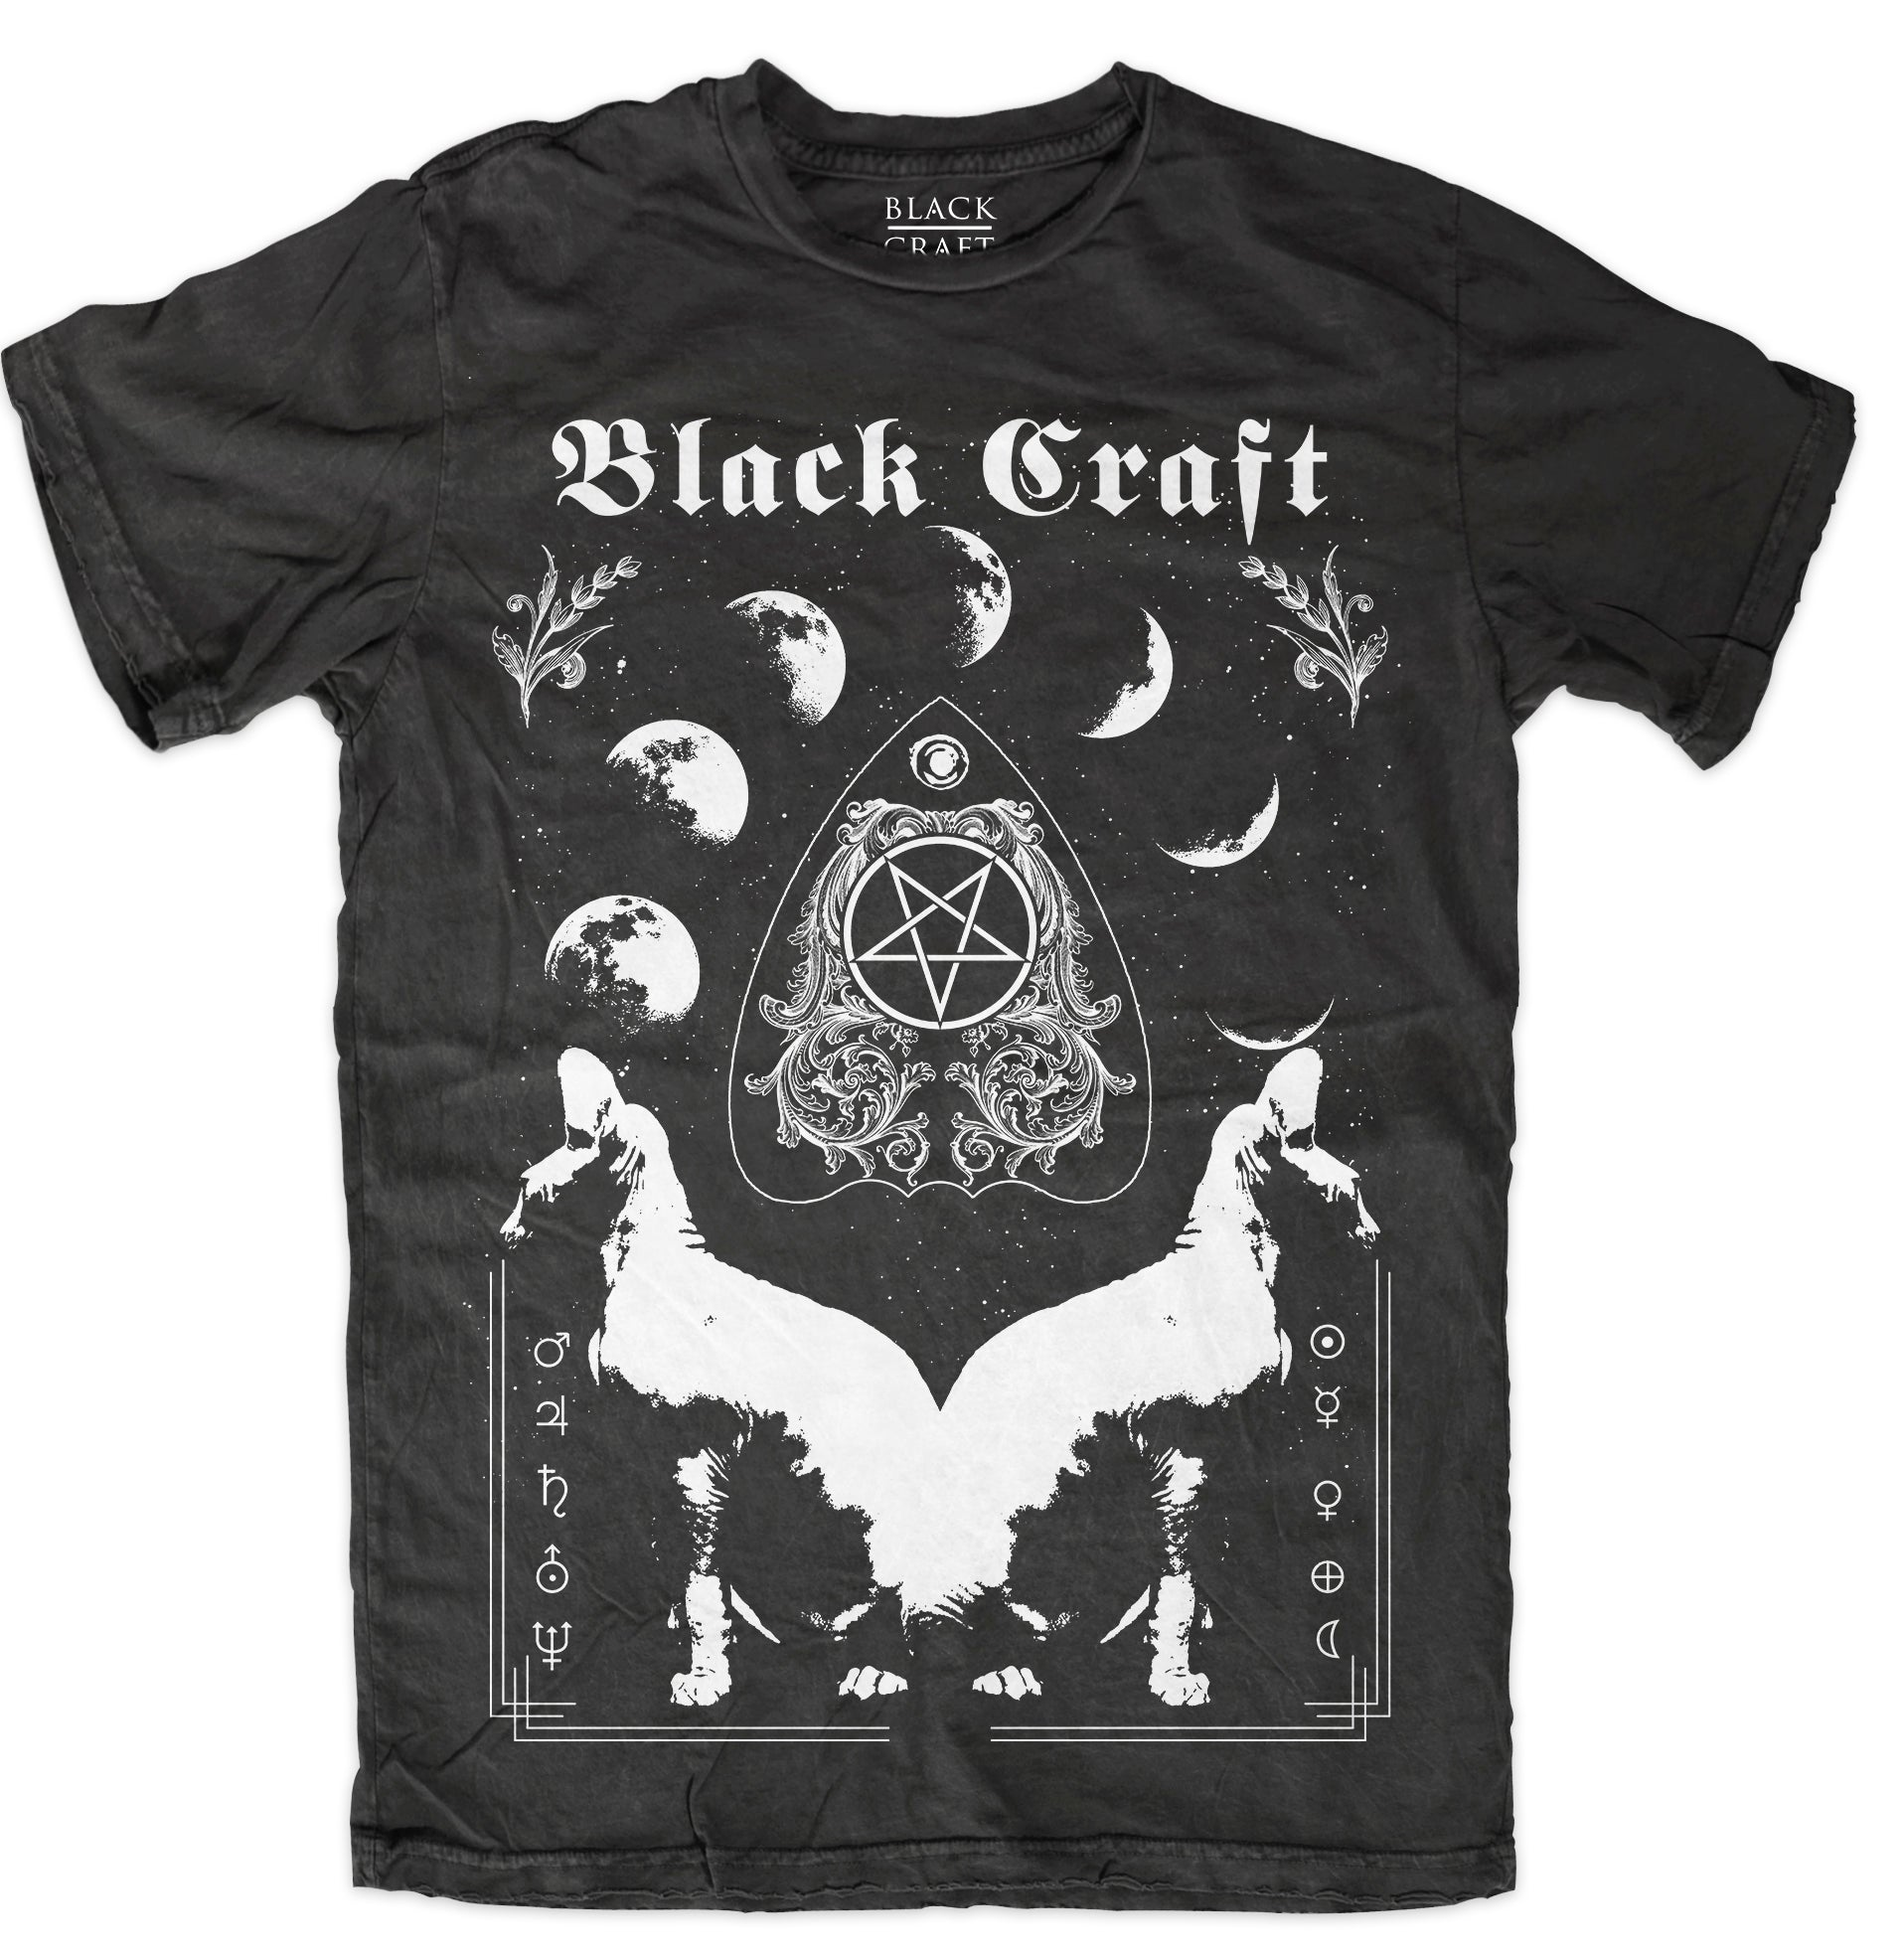 Lucifer Rising: Blackcraft Cult